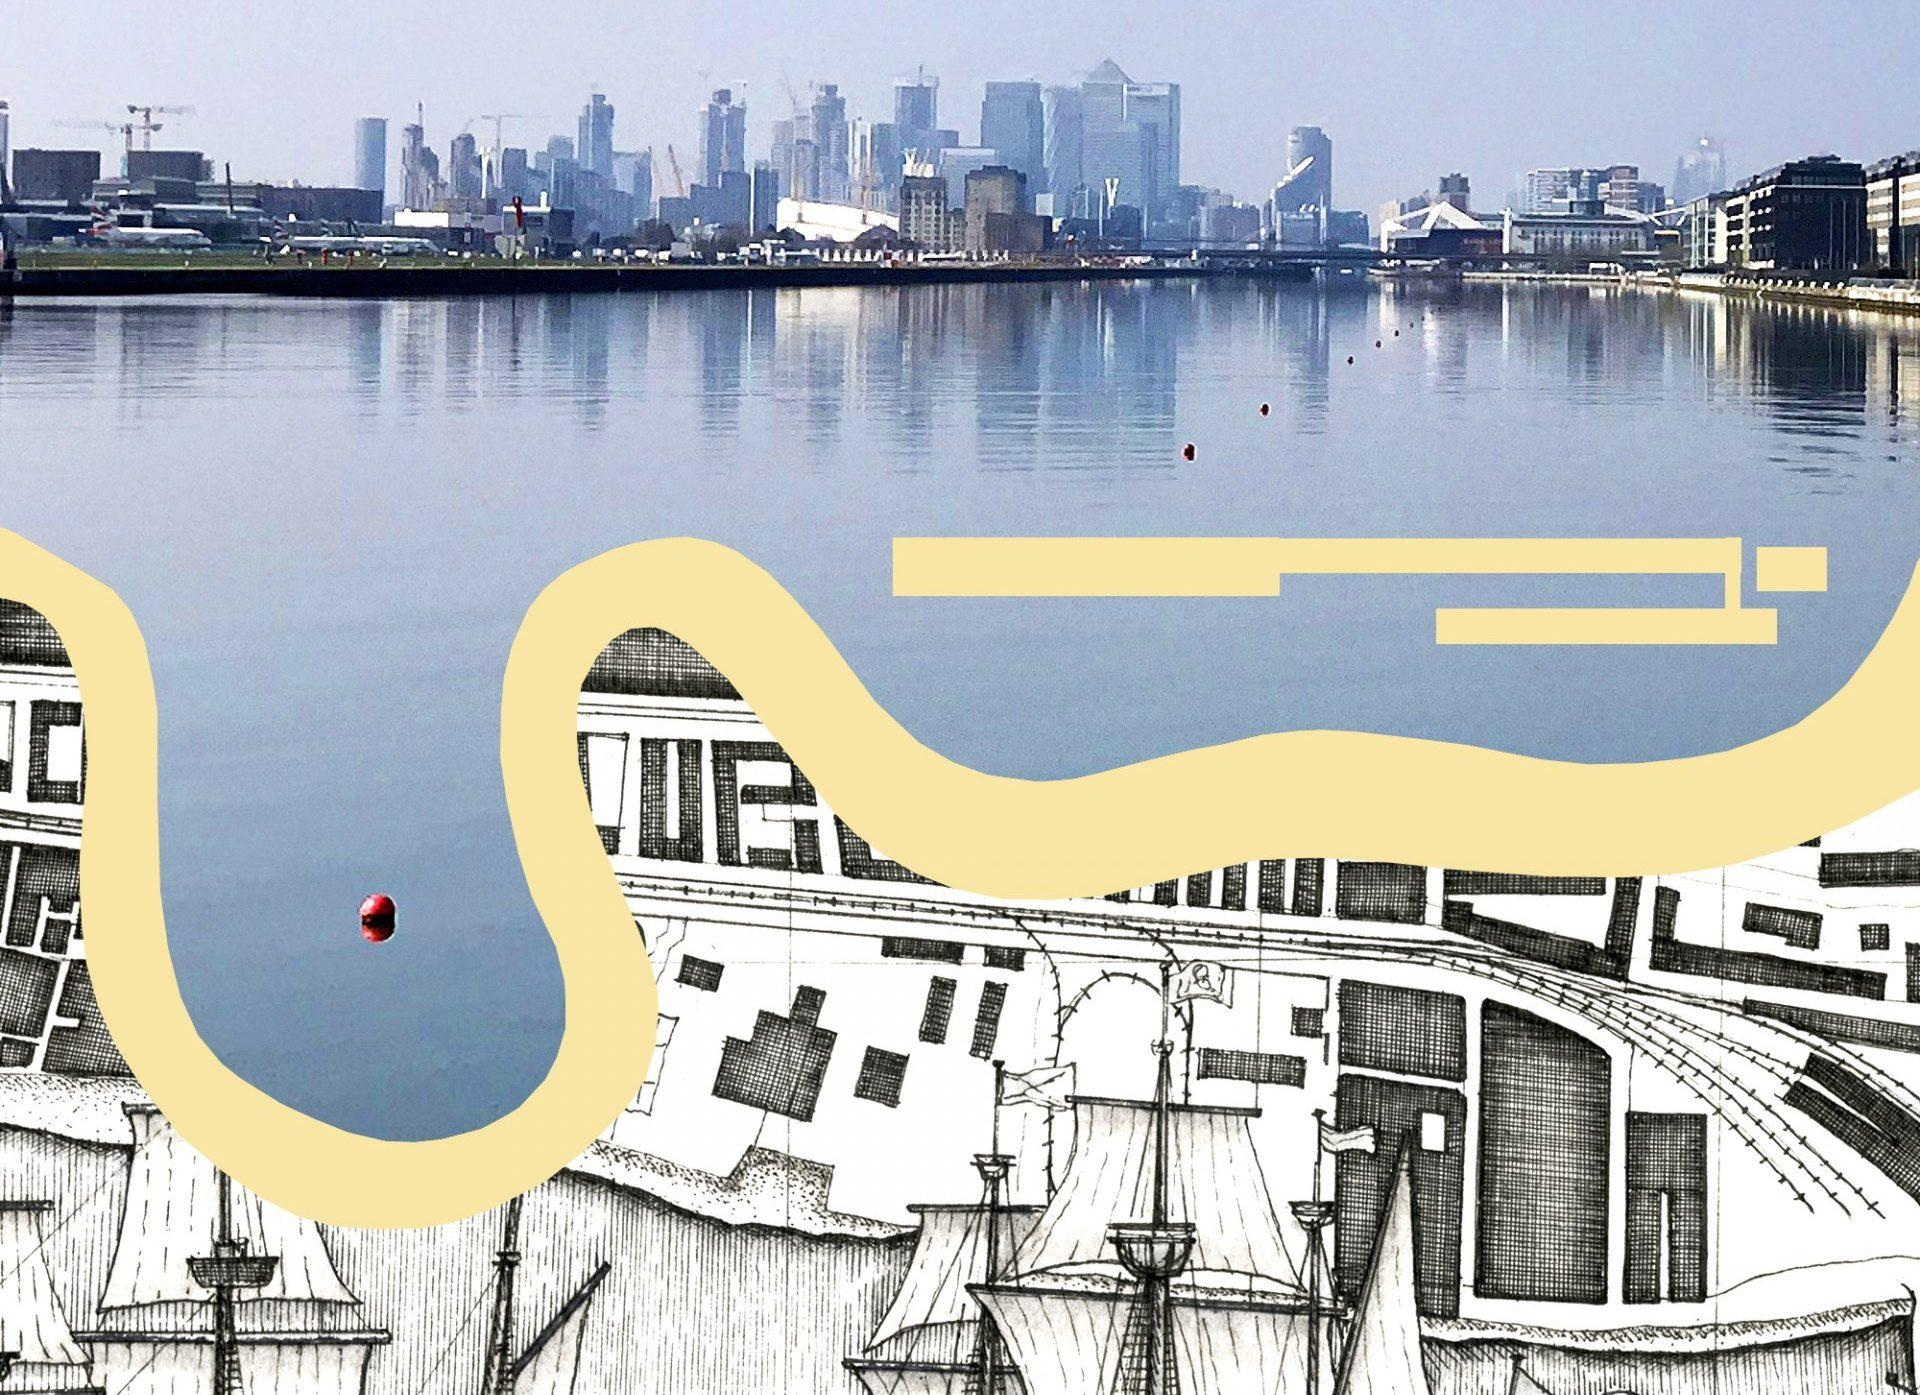 An image of the docks with Canary Wharf in the background. Underneath is an illustration of the Thames